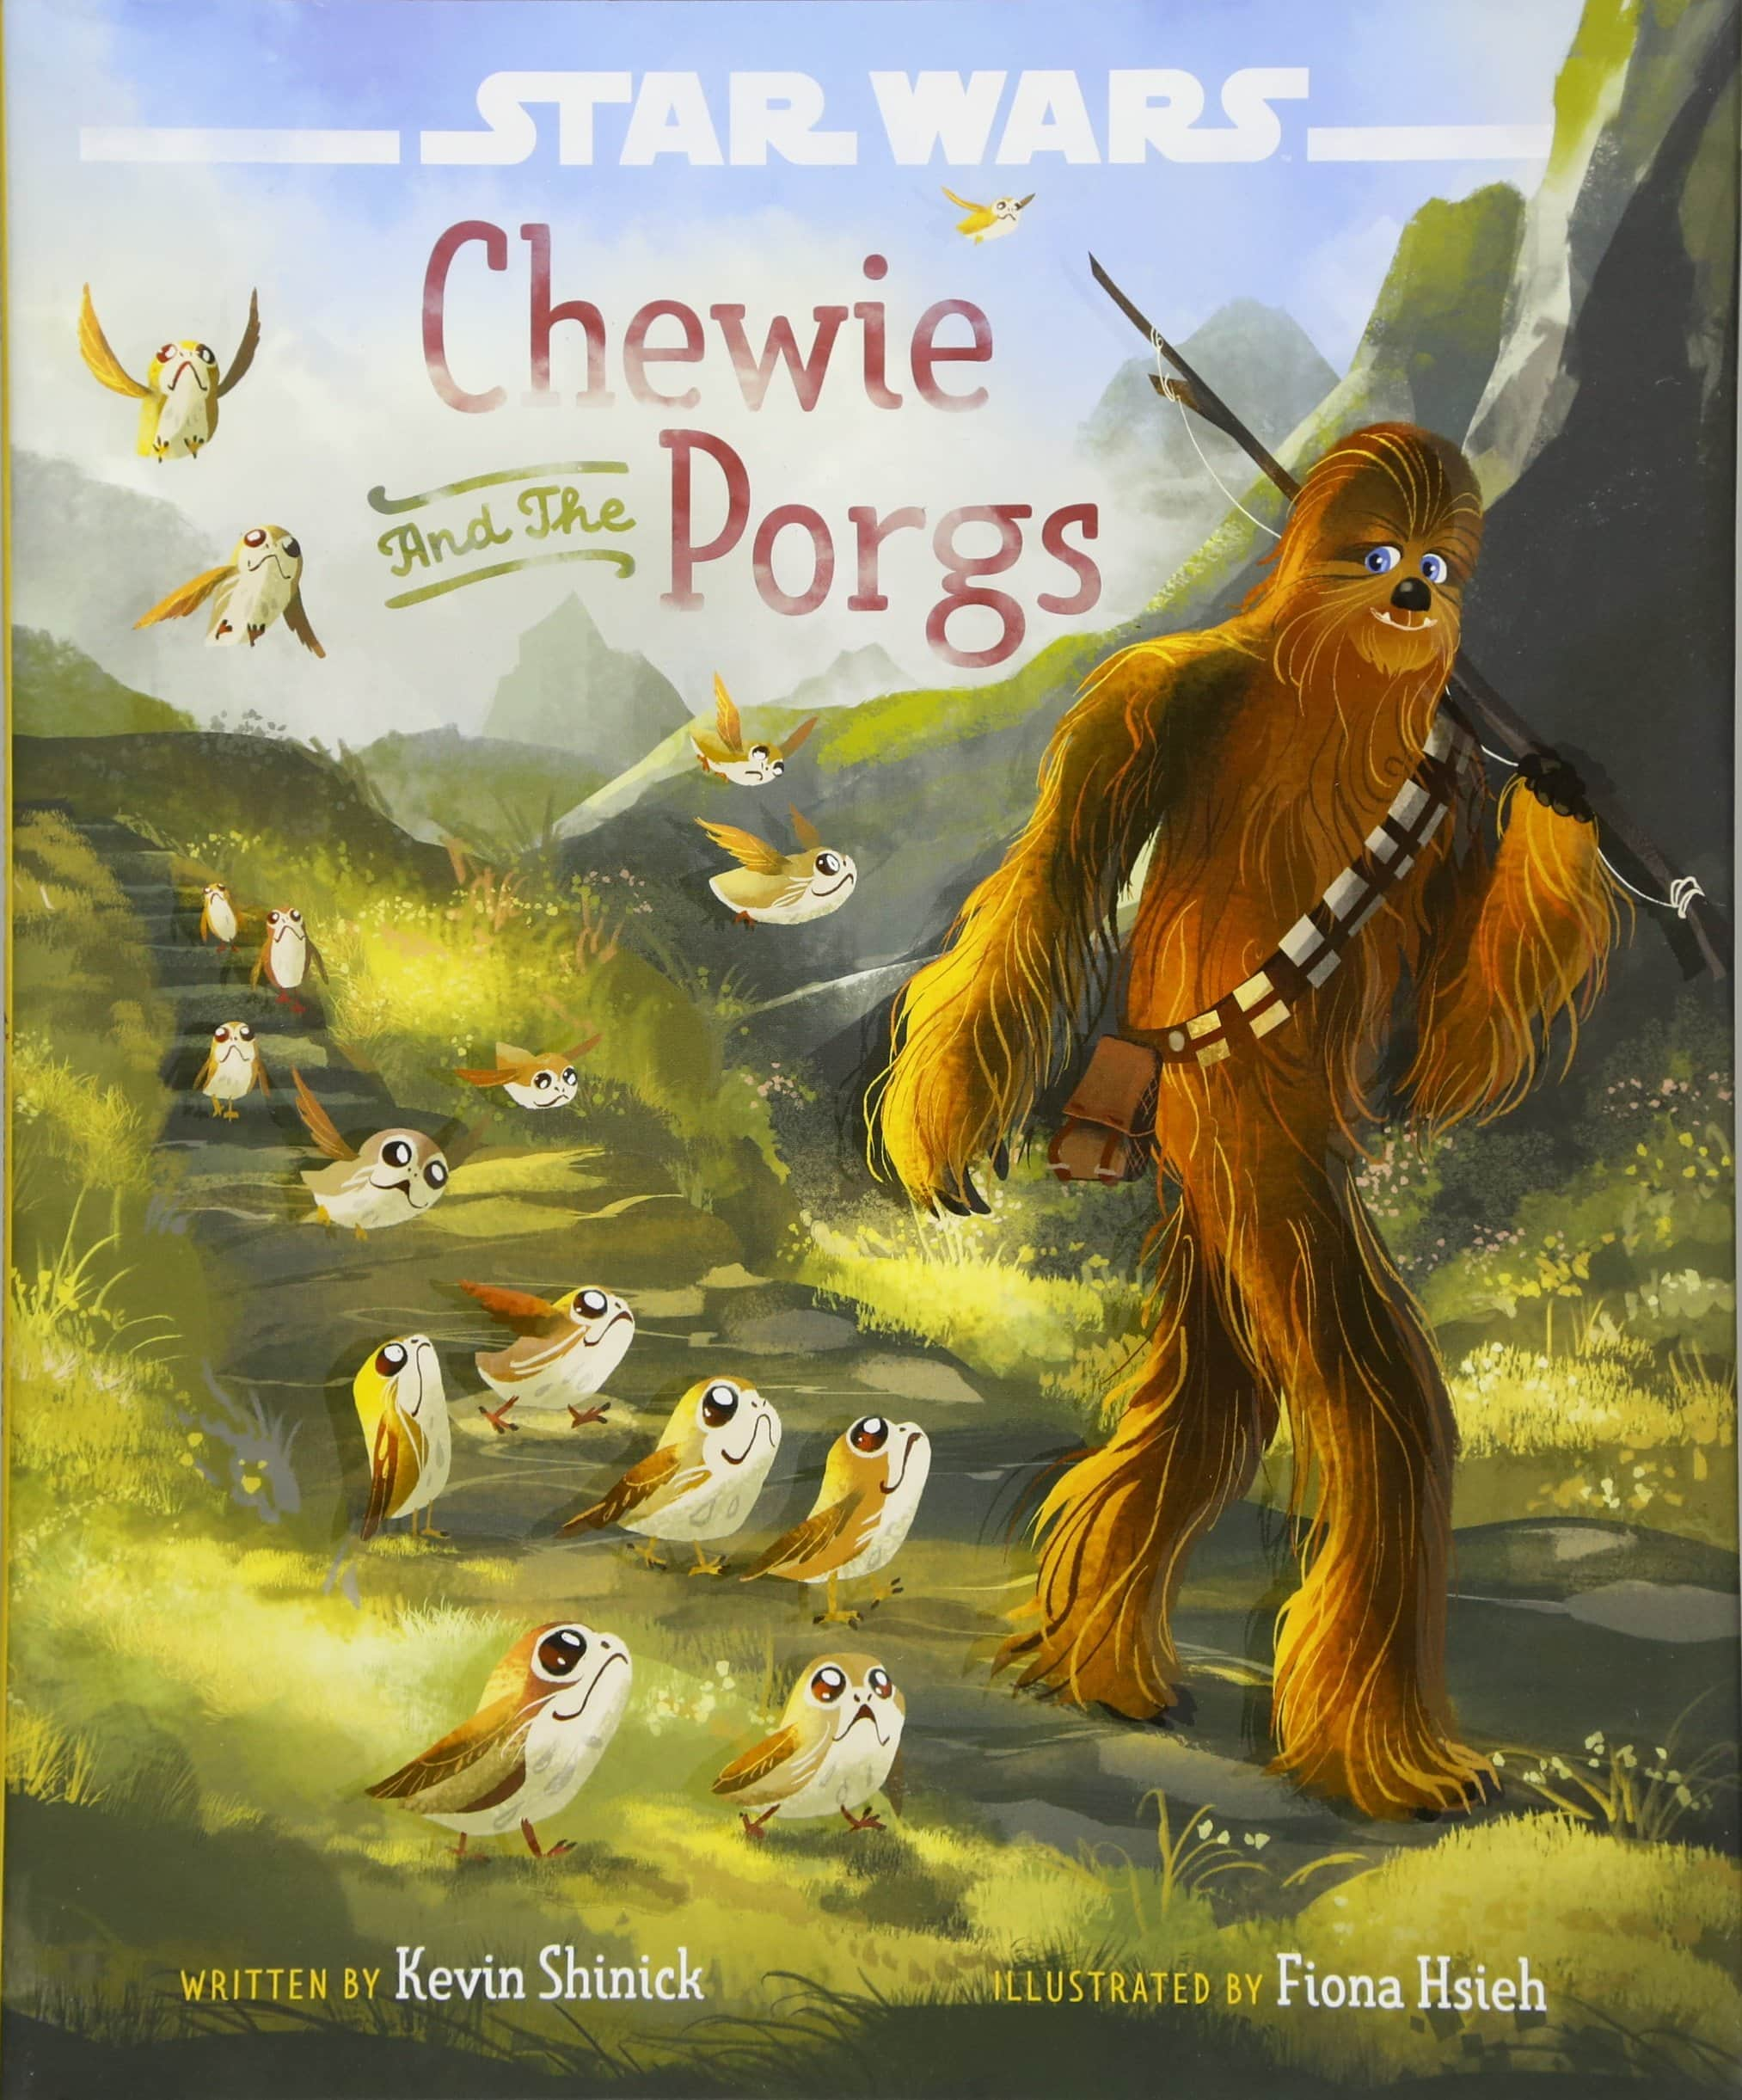 Amazon $10.51 Star Wars: The Last Jedi Chewie and the Porgs Hardcover